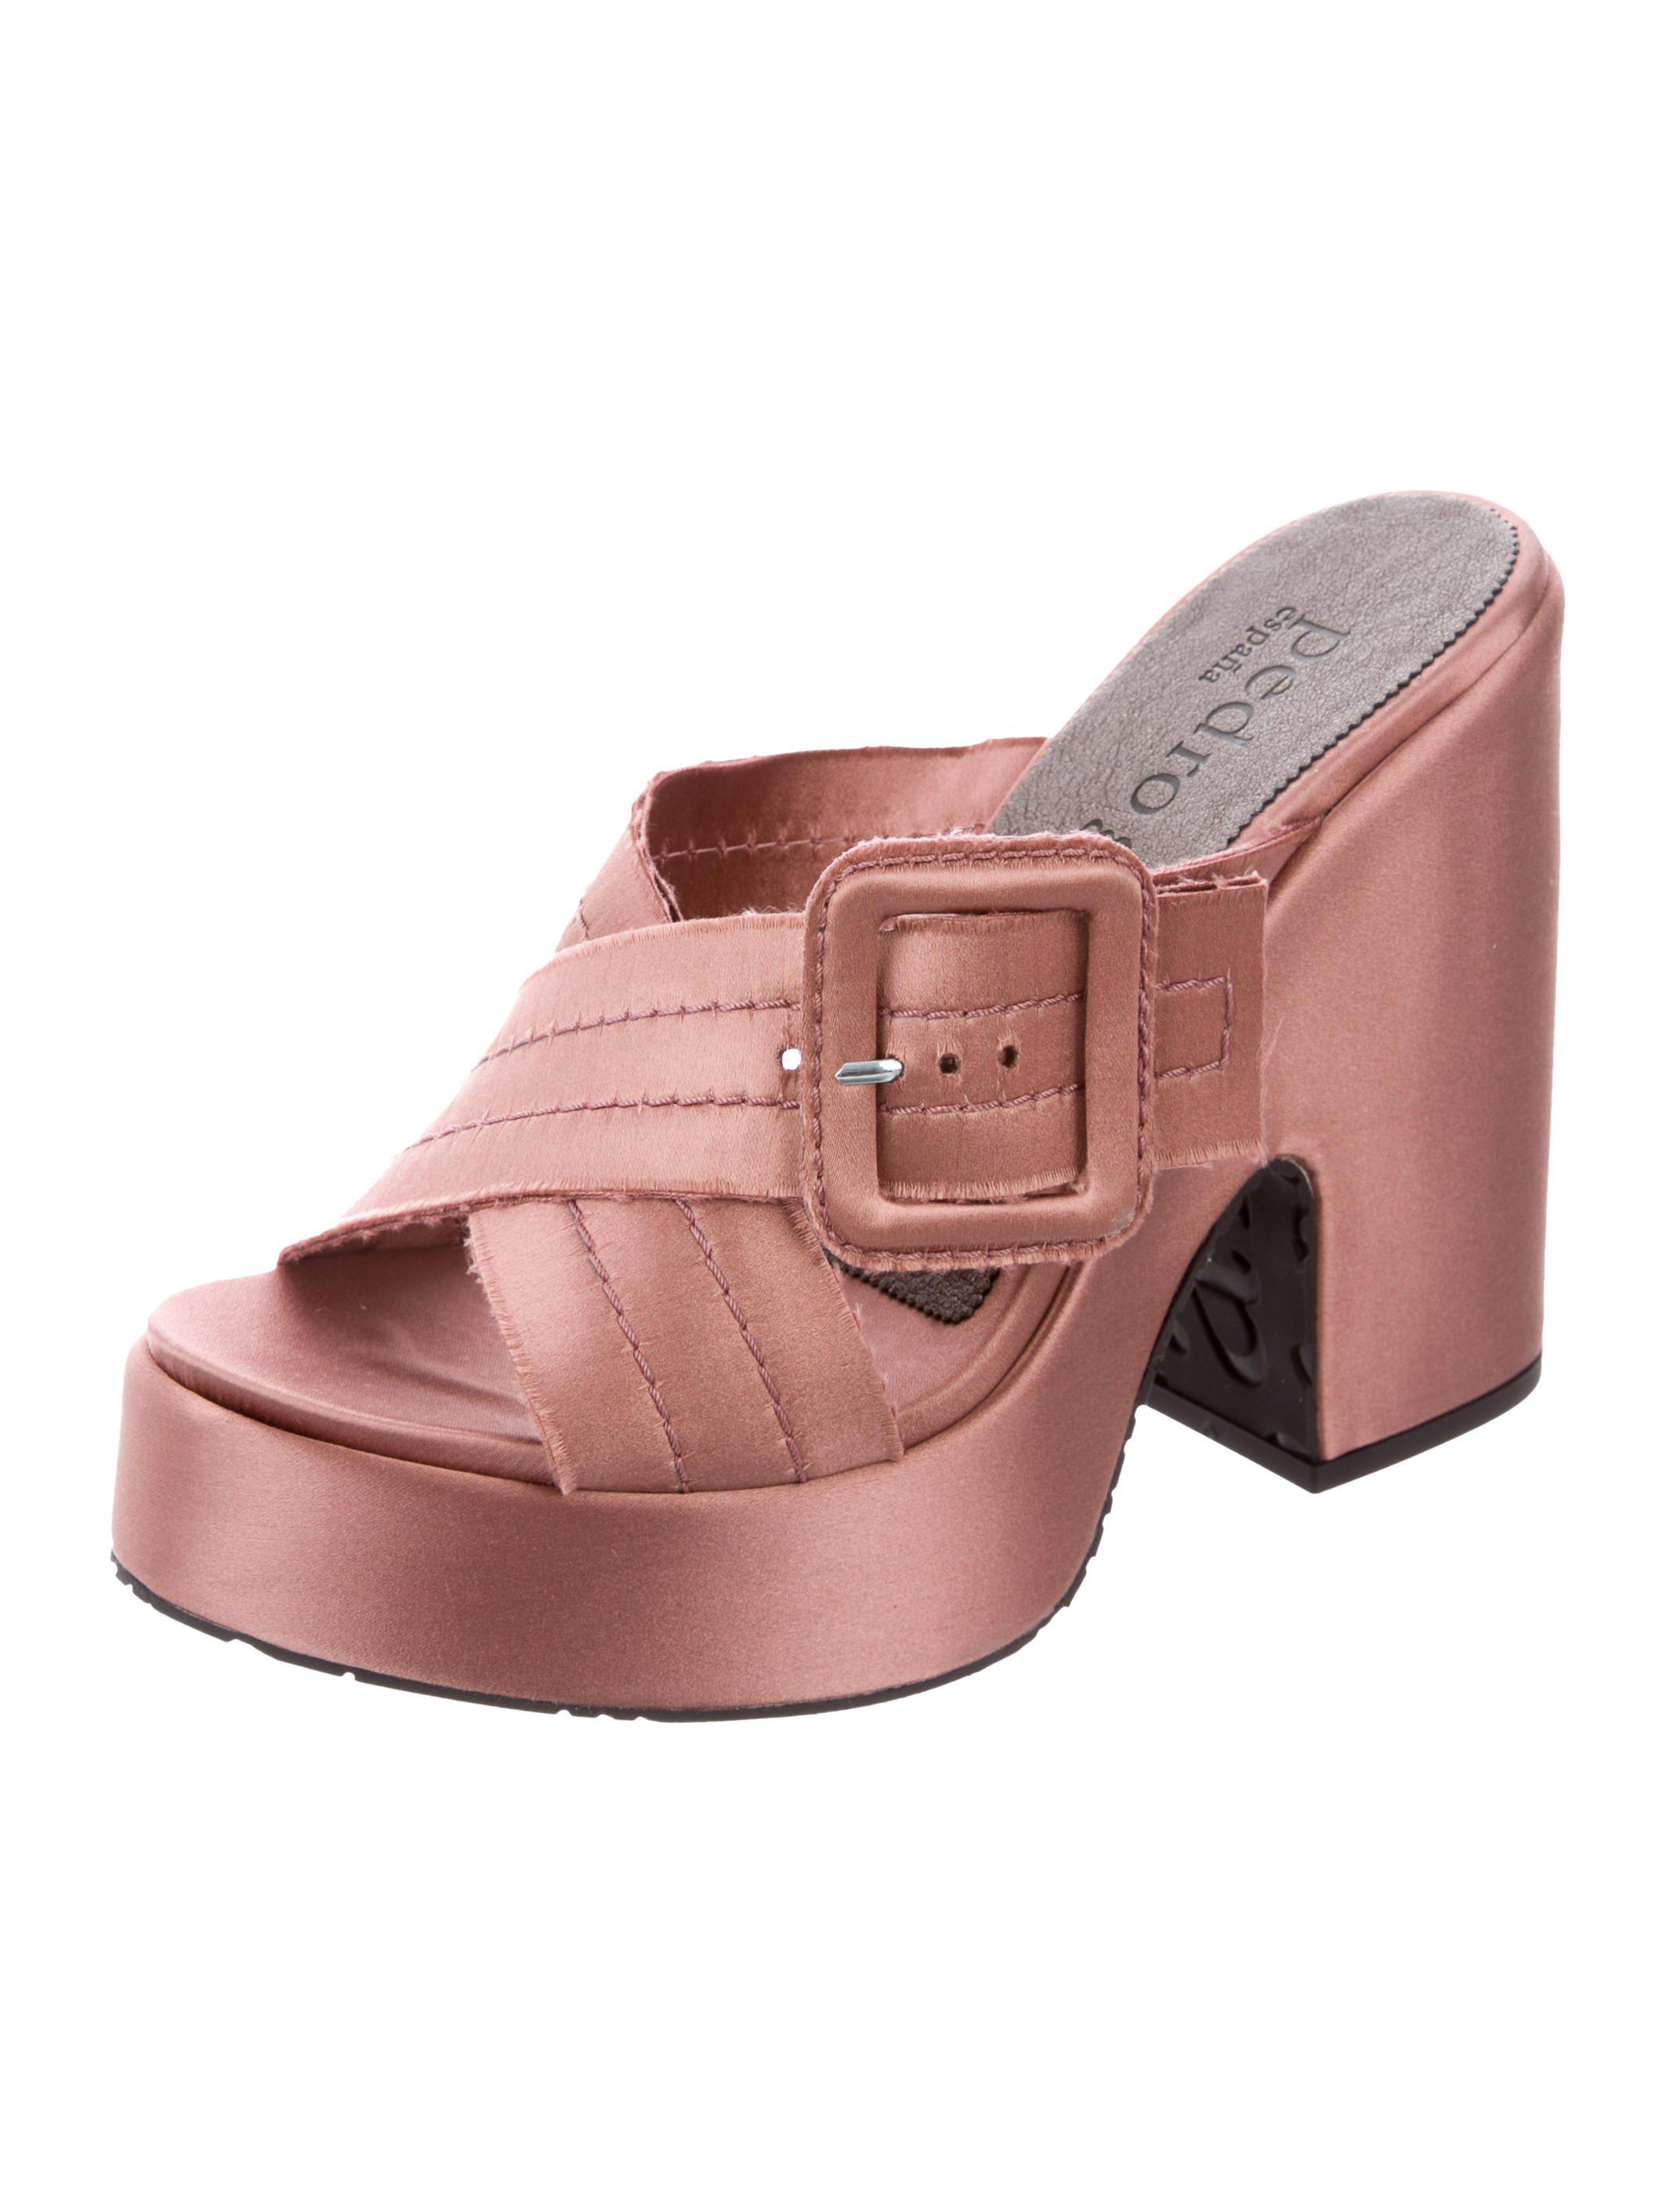 Pedro Garcia Tomasina Platform Mules w/ Tags outlet free shipping authentic discount visit new tFrDWm